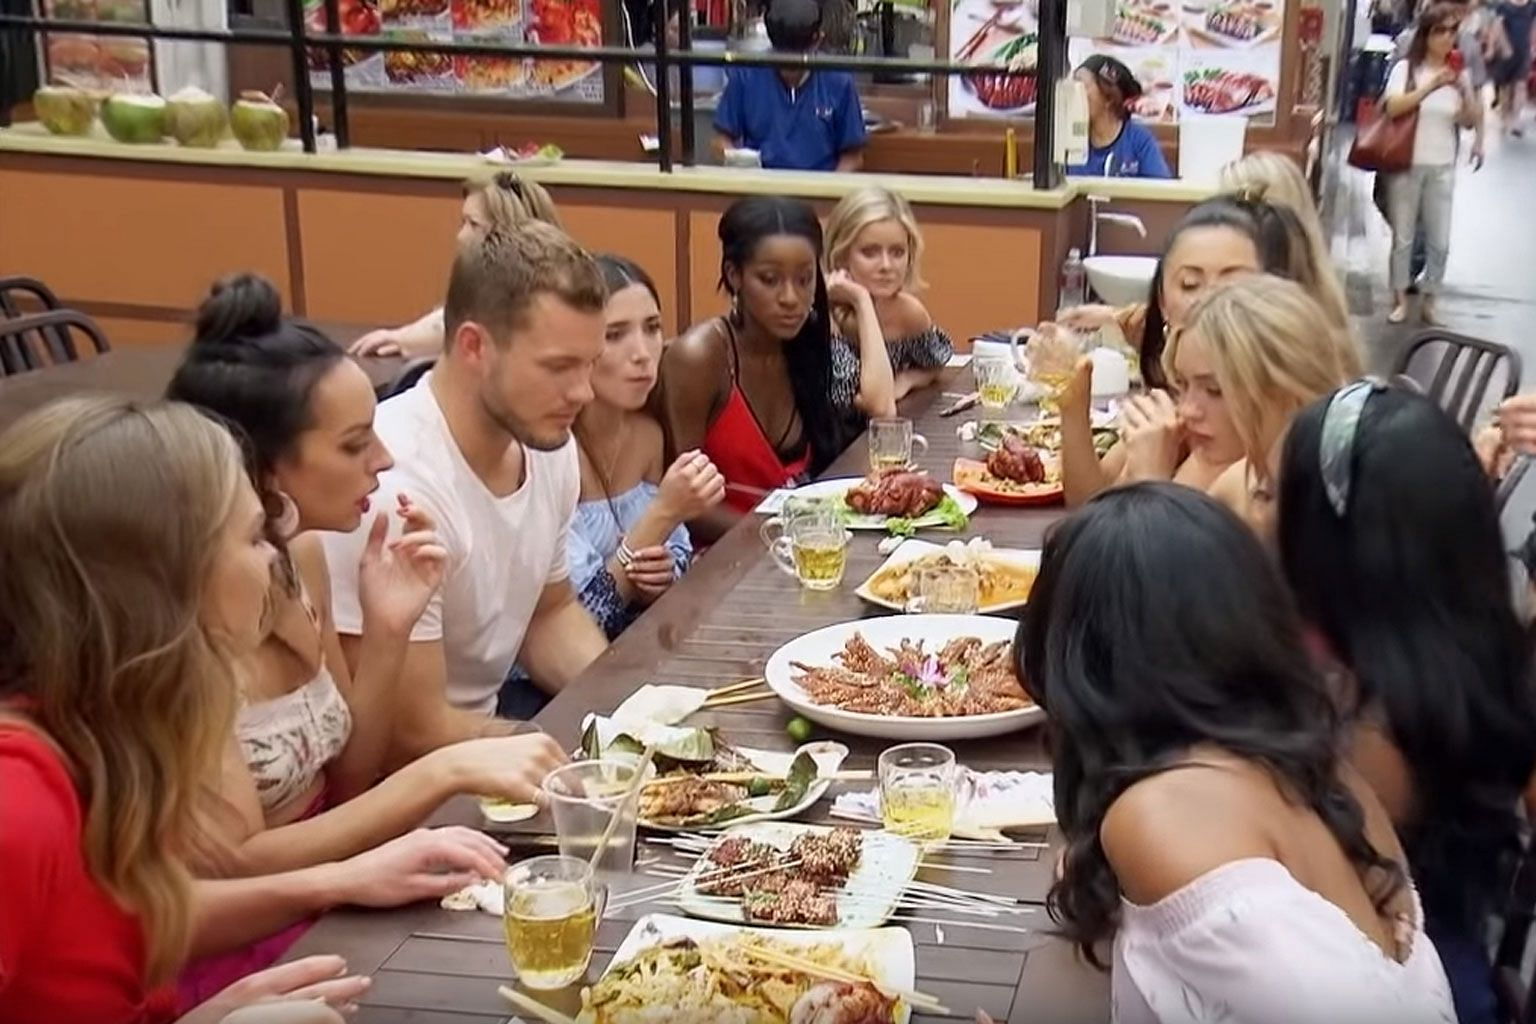 In the fourth episode of The Bachelor, contestants sat at a long table and rehashed ugly American stereotypes about Asian dishes.